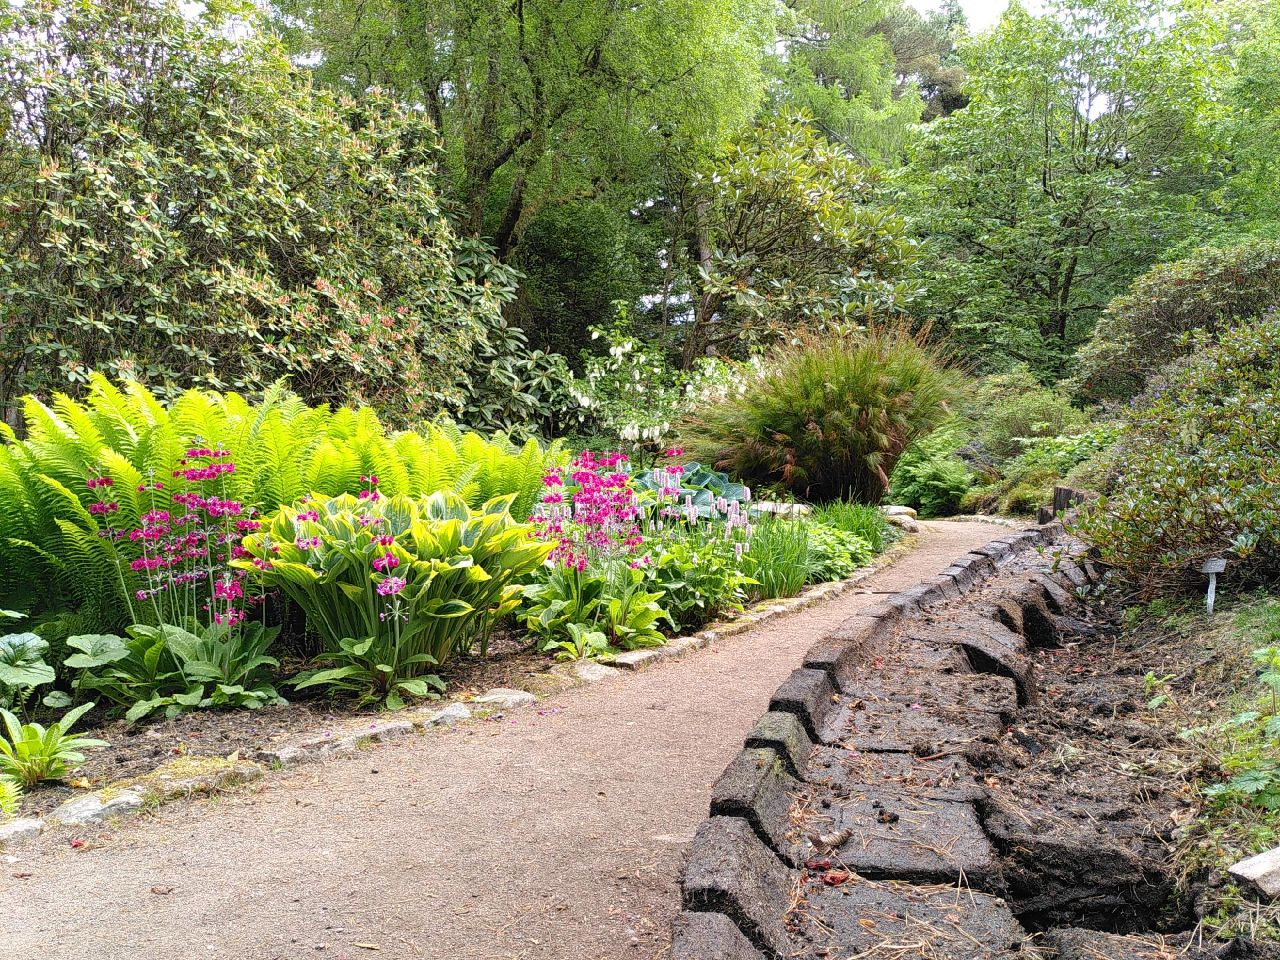 Large blocks of cut peat, shaped like a seat with a short back, line the right of the path. On the other side of the path are ferns and flowers lit with sunlight.